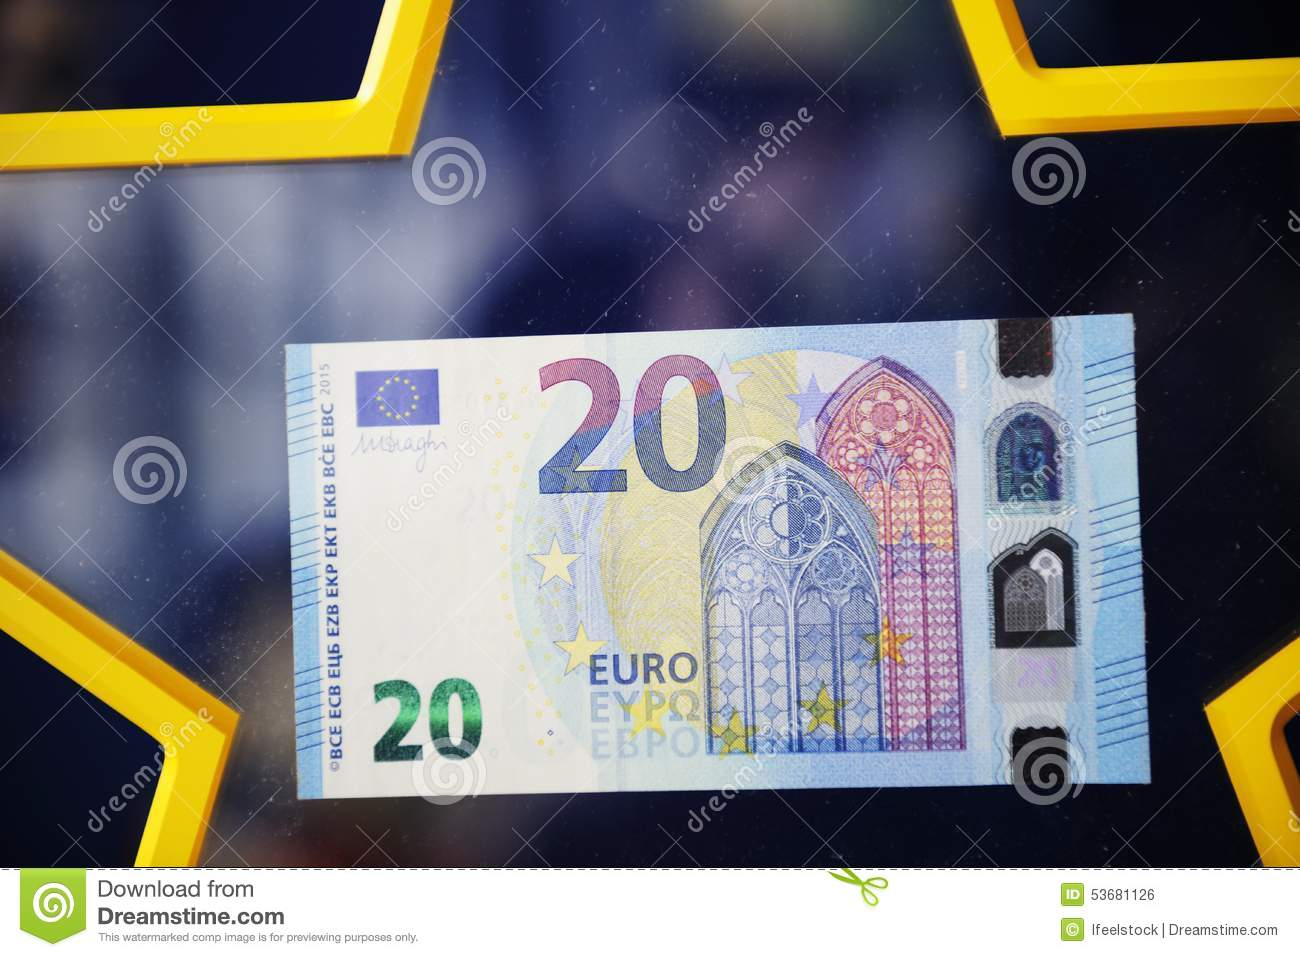 New 20 euro banknotes bill currency money paper european stock photo new 20 euro banknotes bill currency money paper european buycottarizona Choice Image